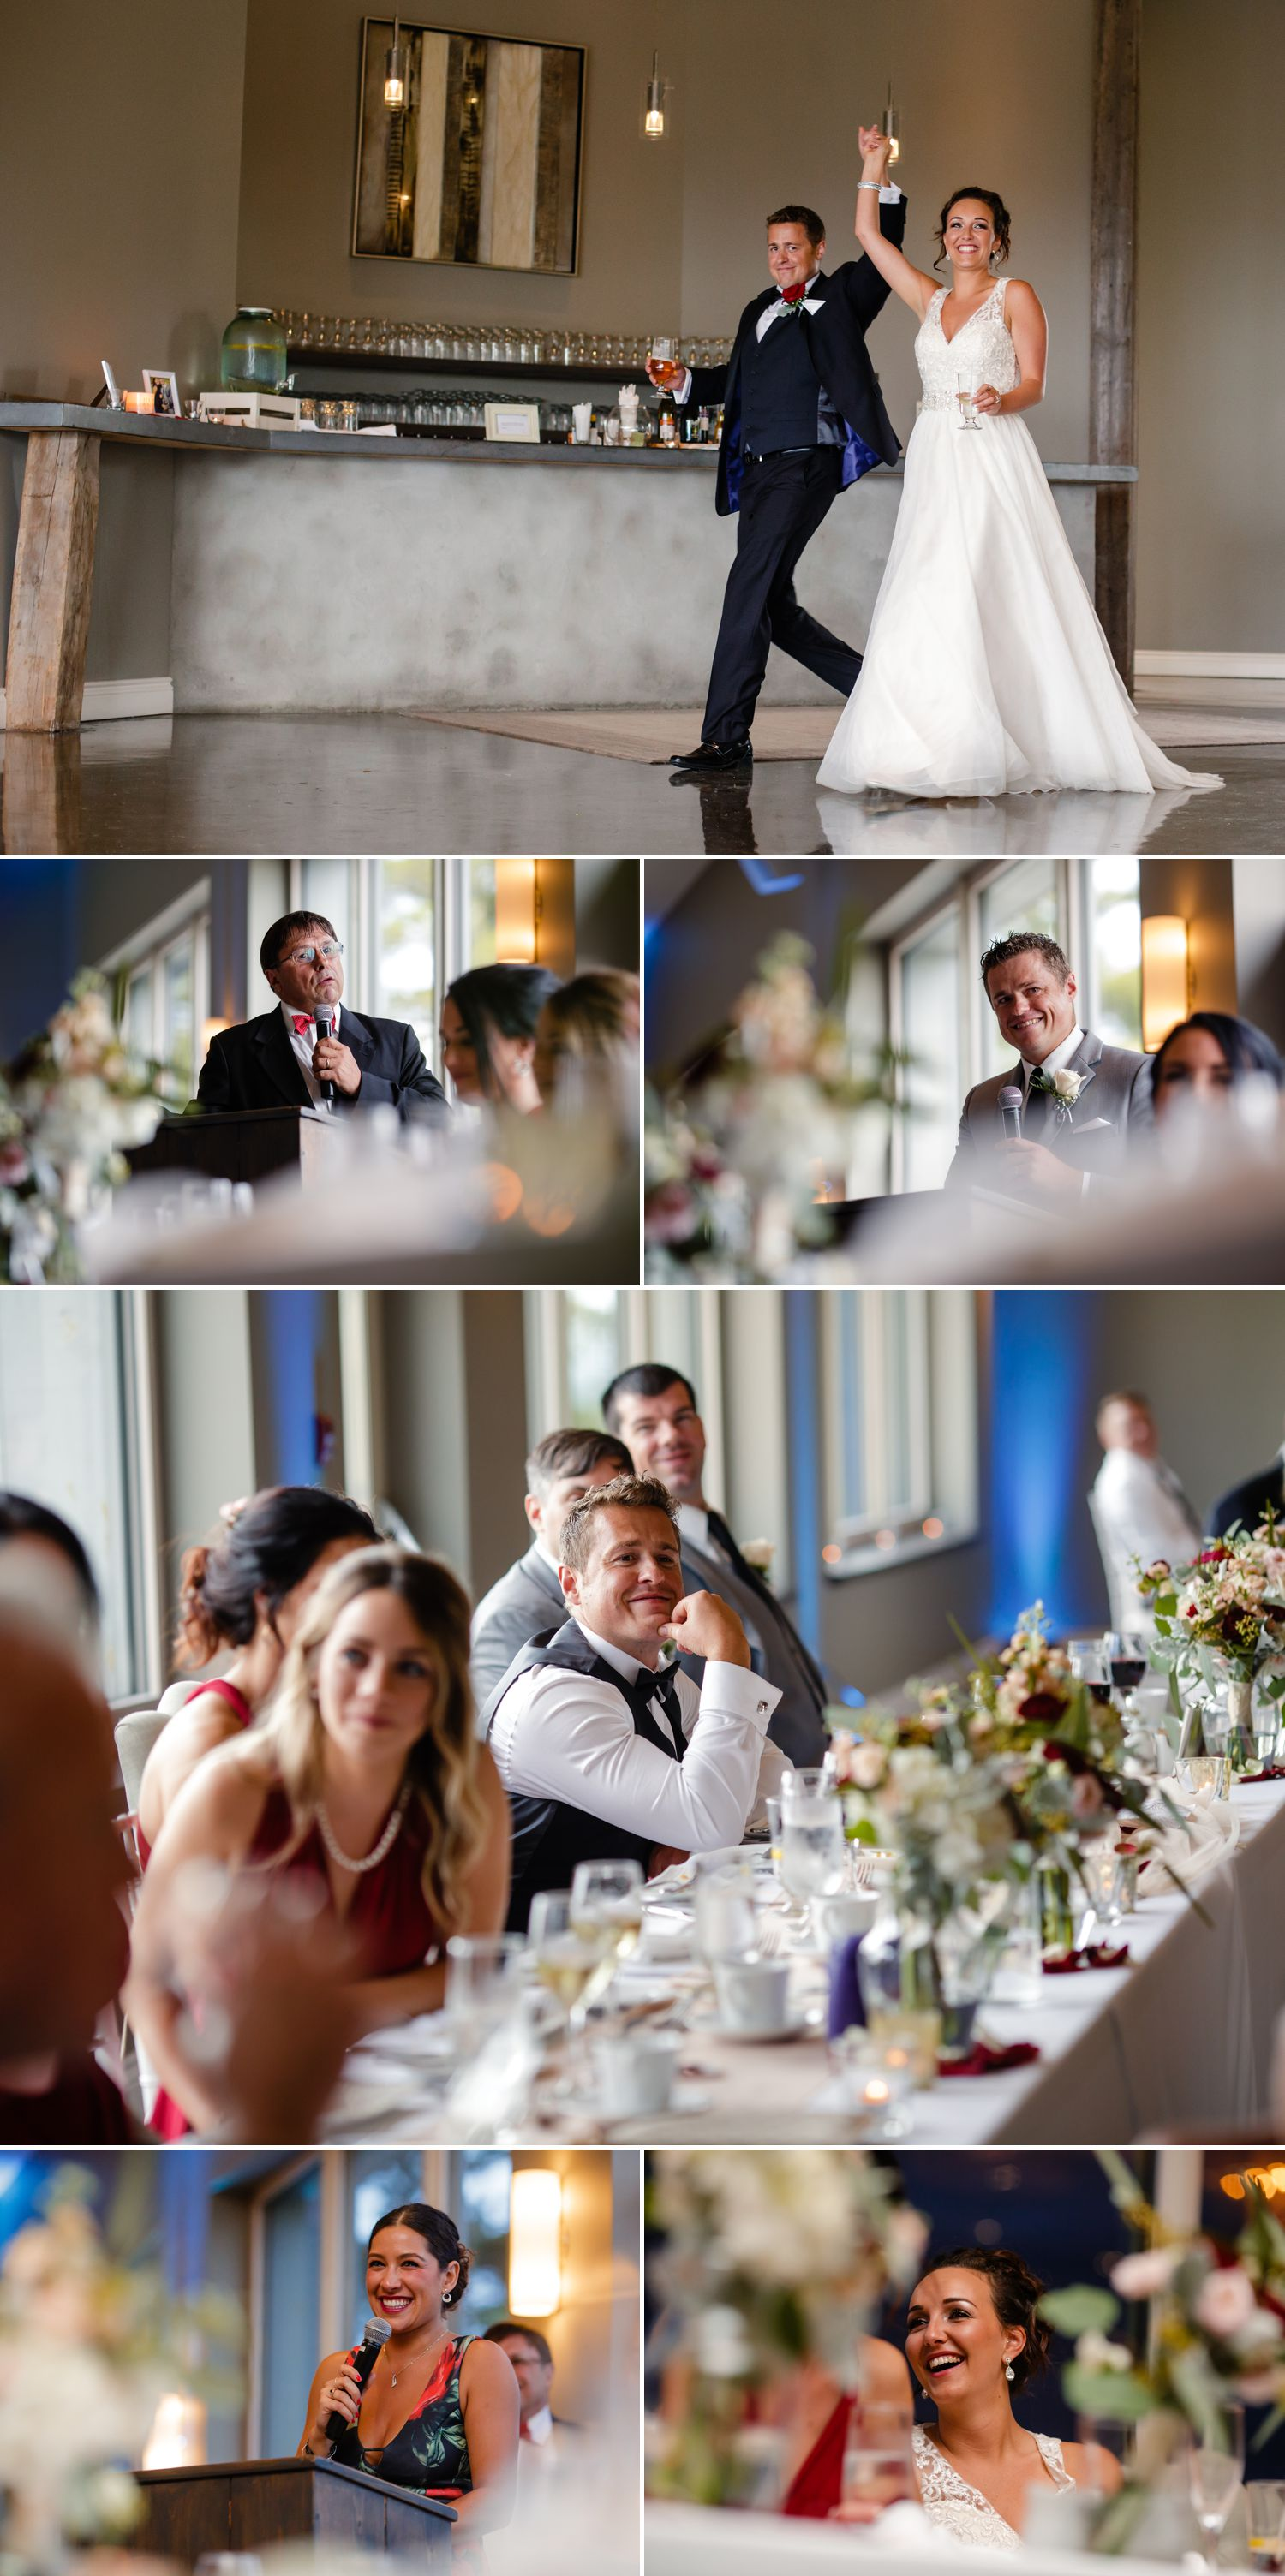 A wedding reception and speeches at Le Belvedere in Wakefield, QC